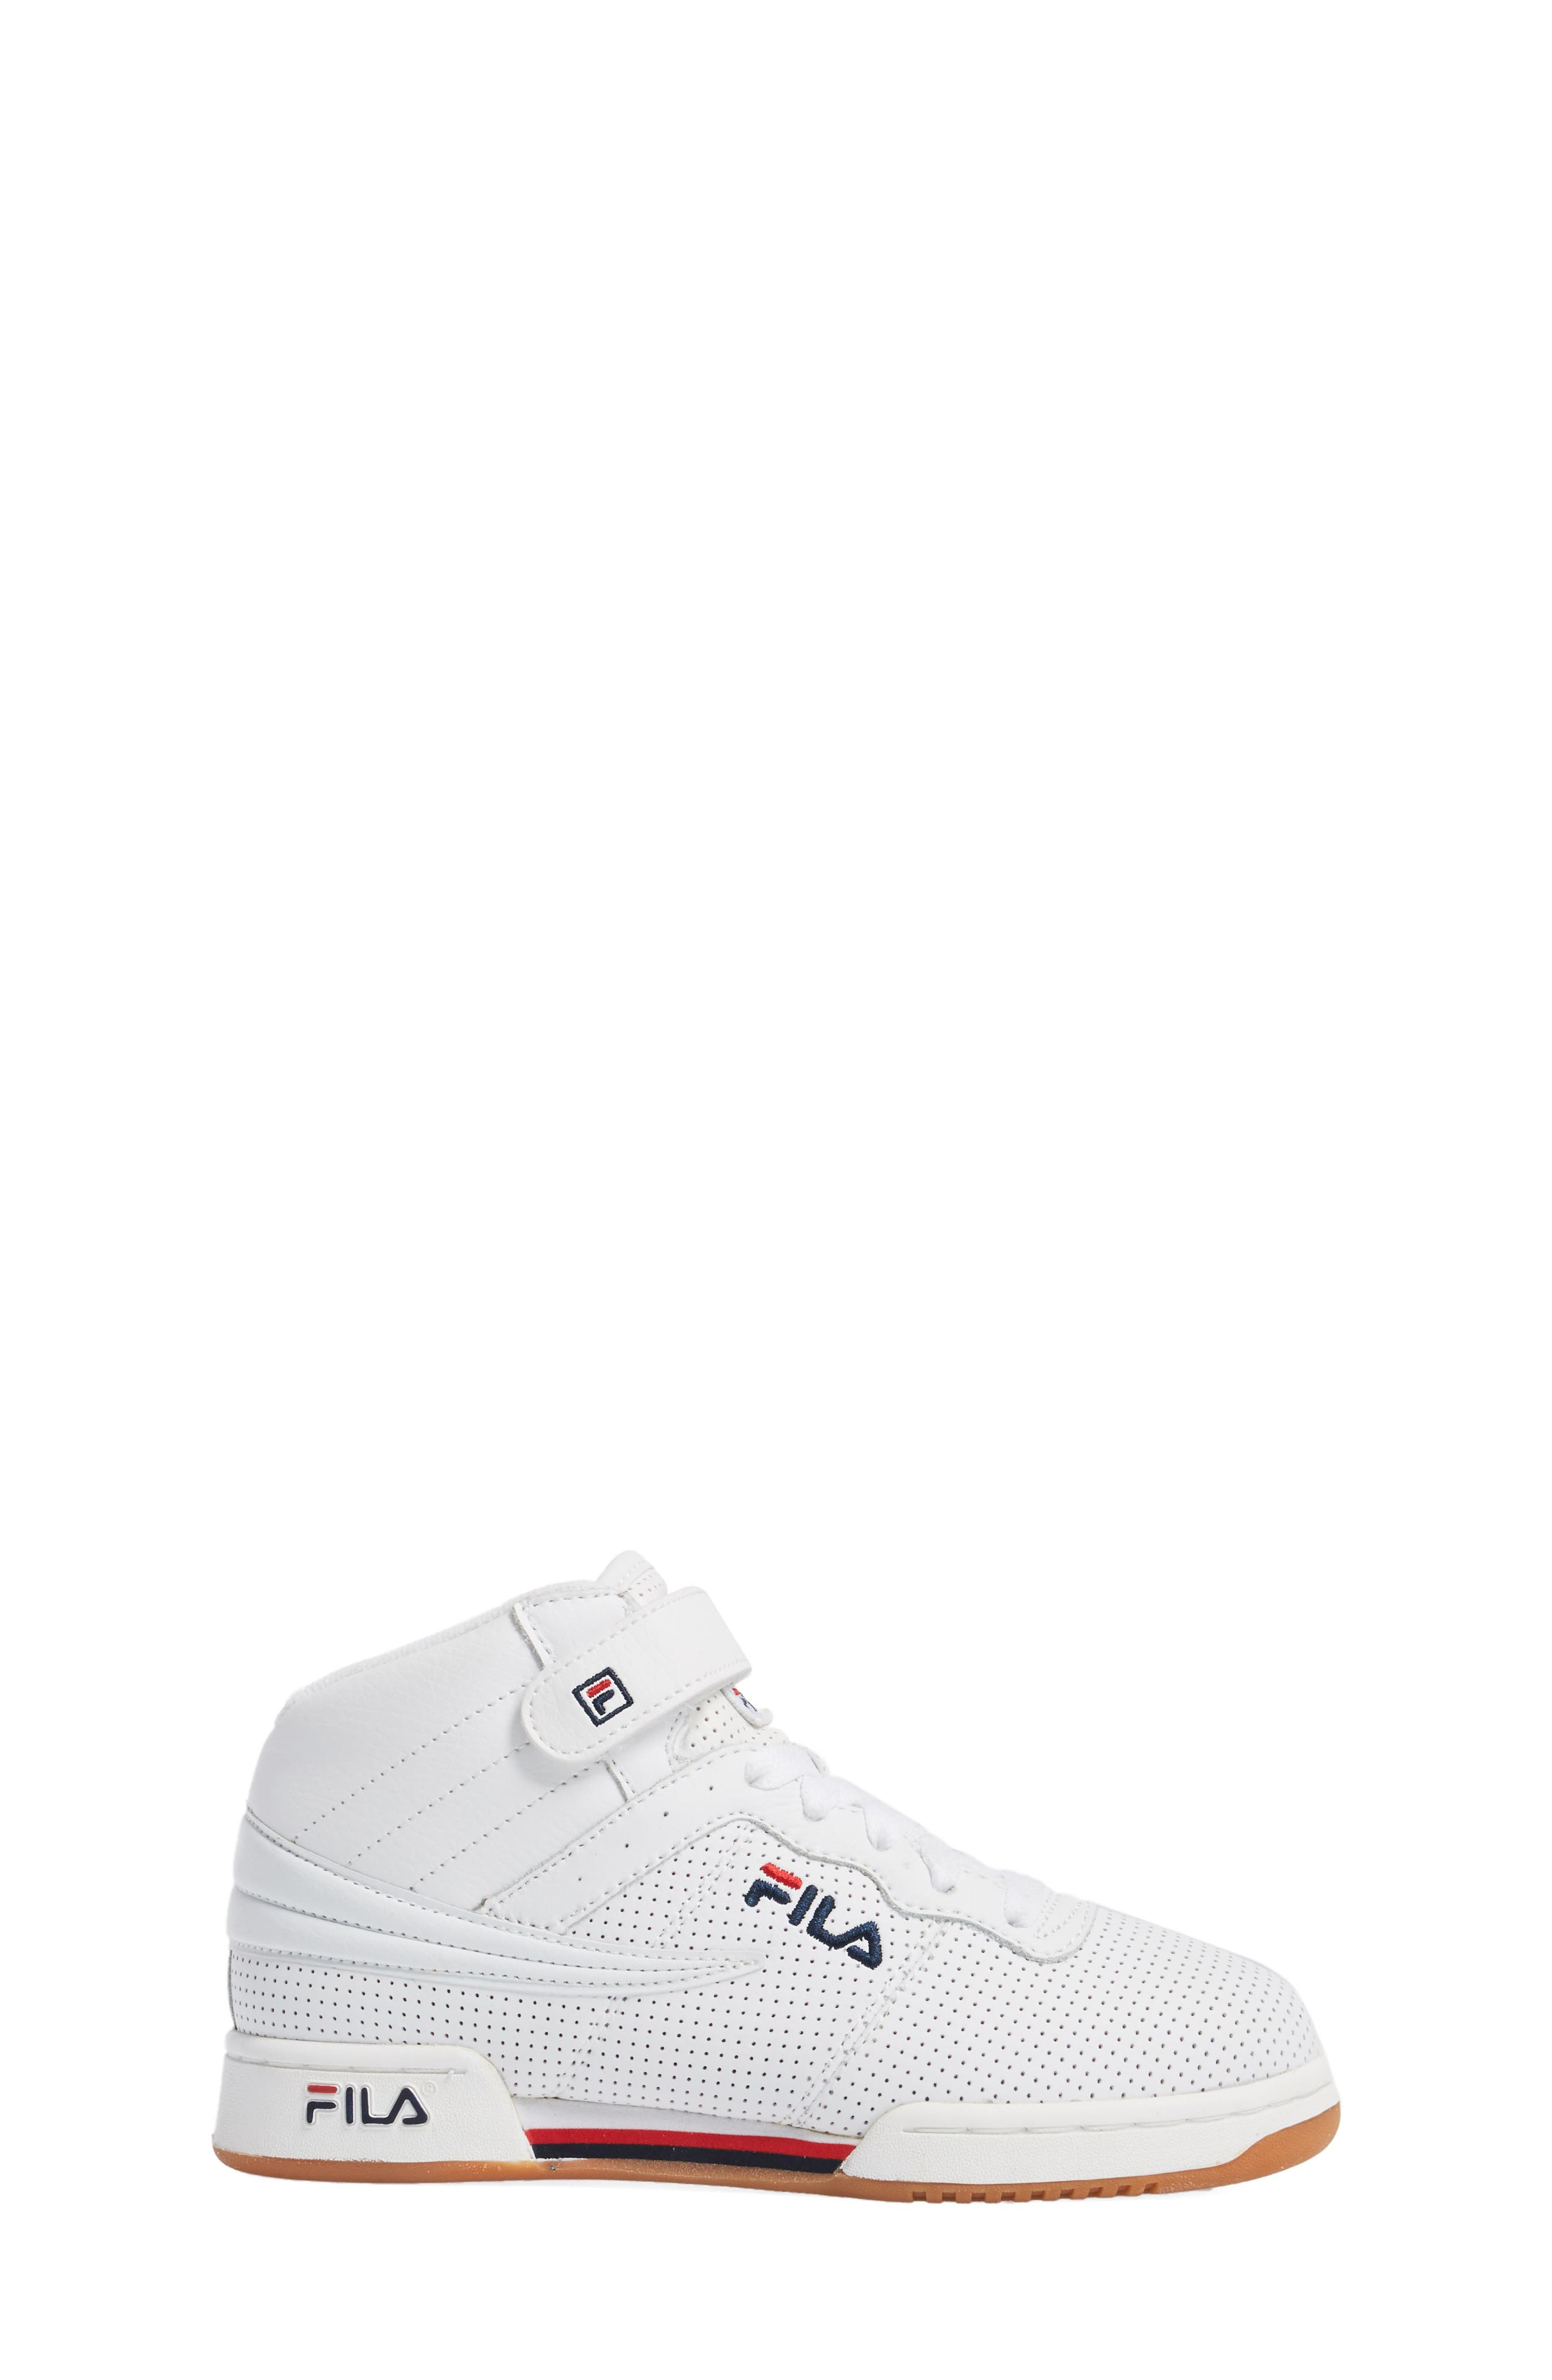 F-13 Perforated High Top Sneaker,                             Alternate thumbnail 3, color,                             150